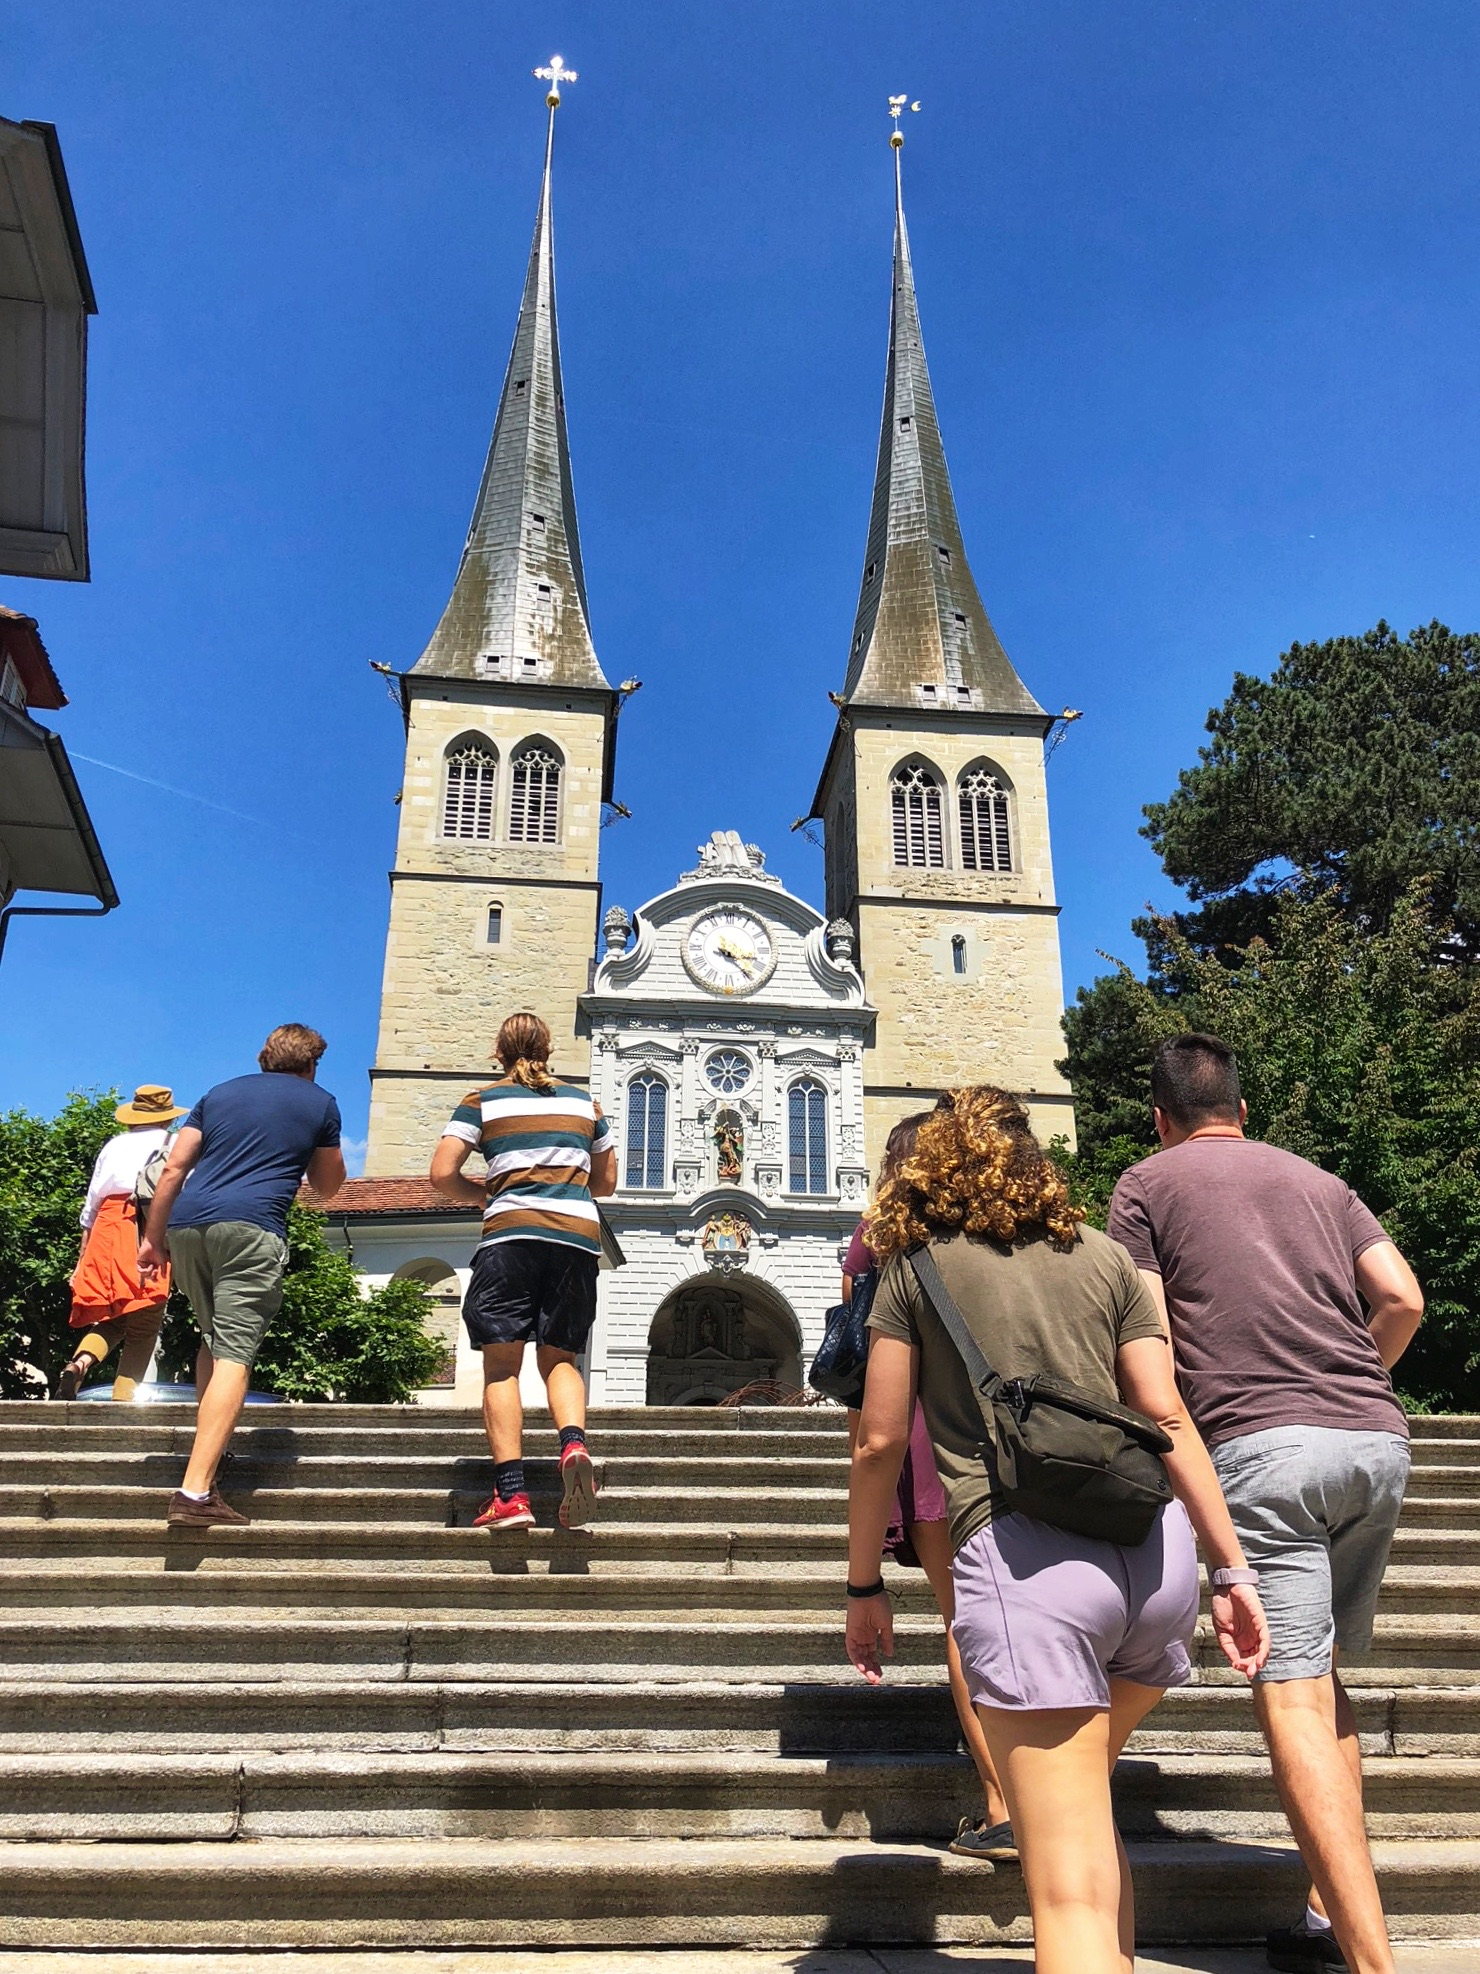 Walking up the steps to the Hofkirche in Lucerne.